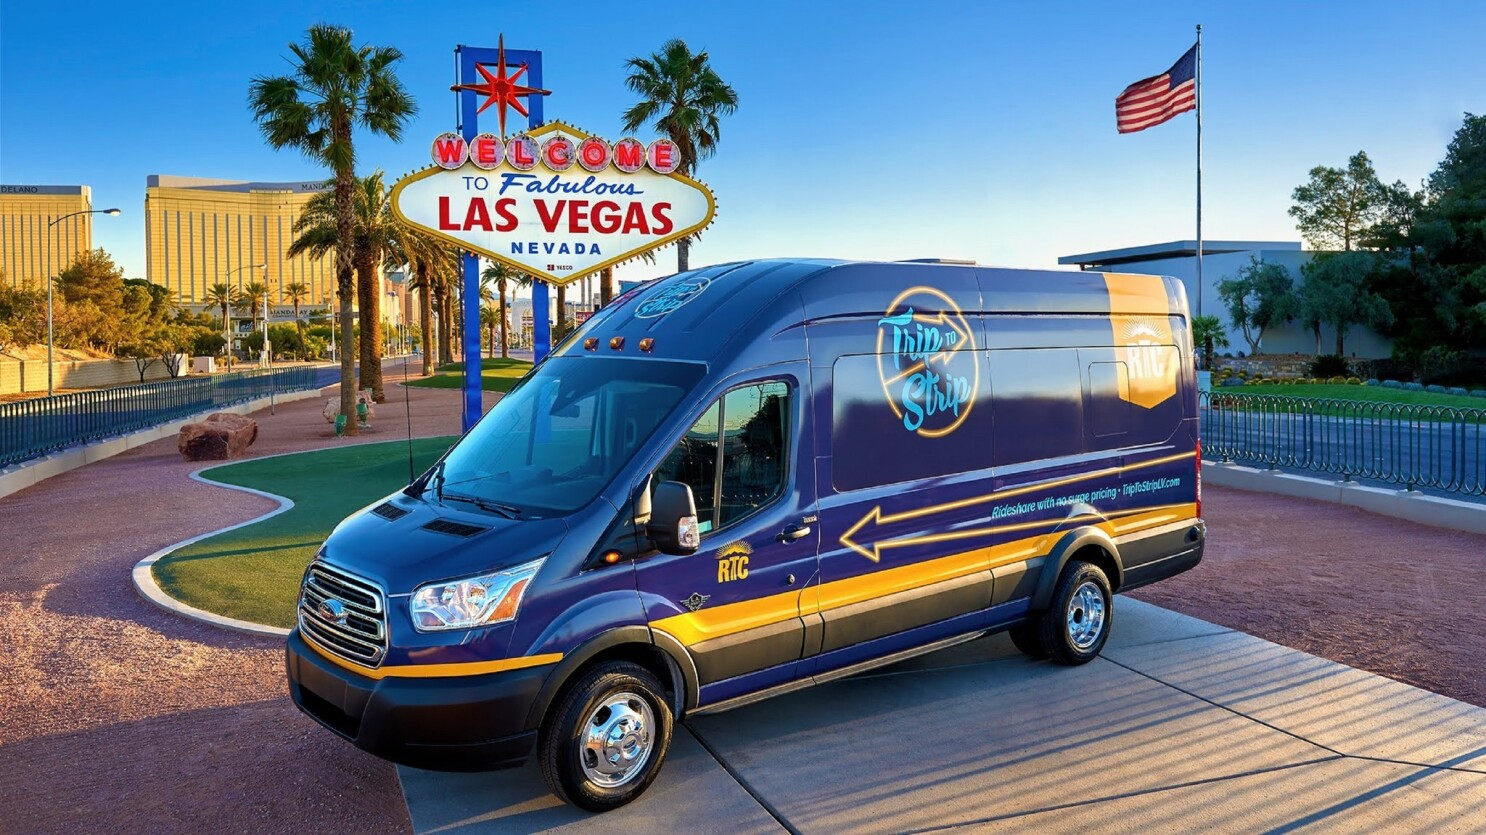 Las Vegas New Airport To The Strip Ride Hailing Service May Be One Of The Cheapest Los Angeles Times